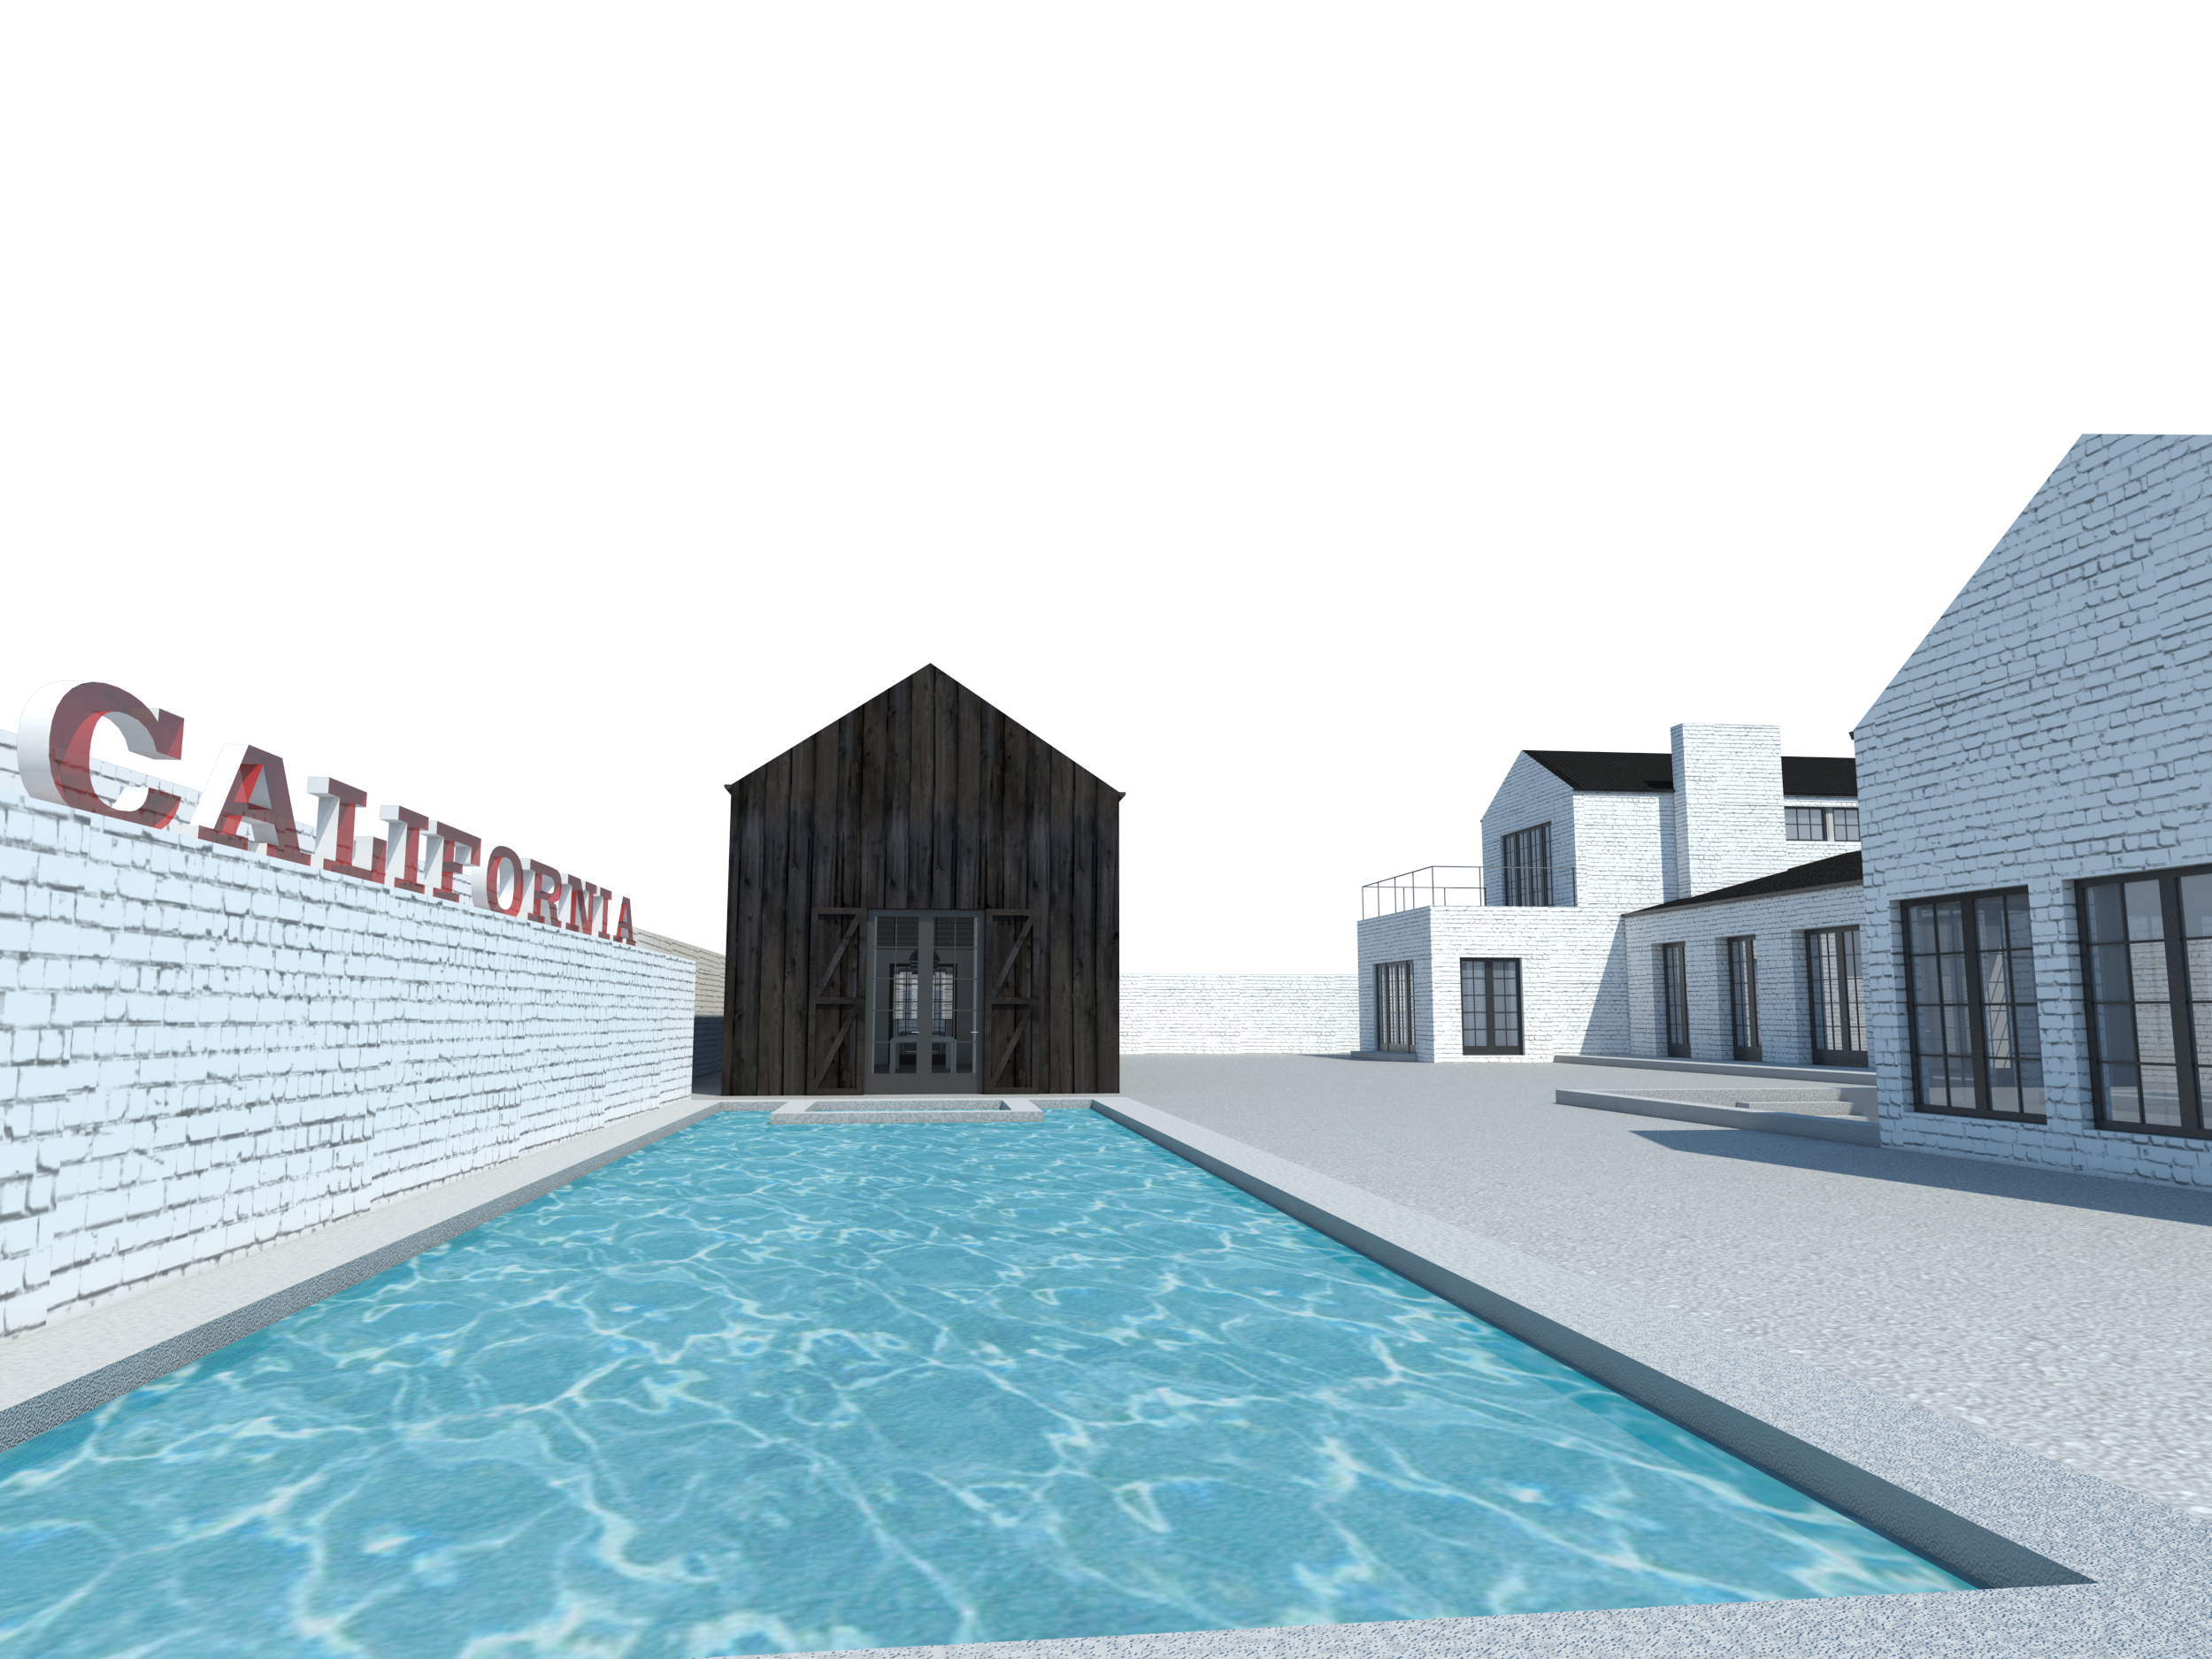 A study model view from the pool, looking towards the studio and rear facade.